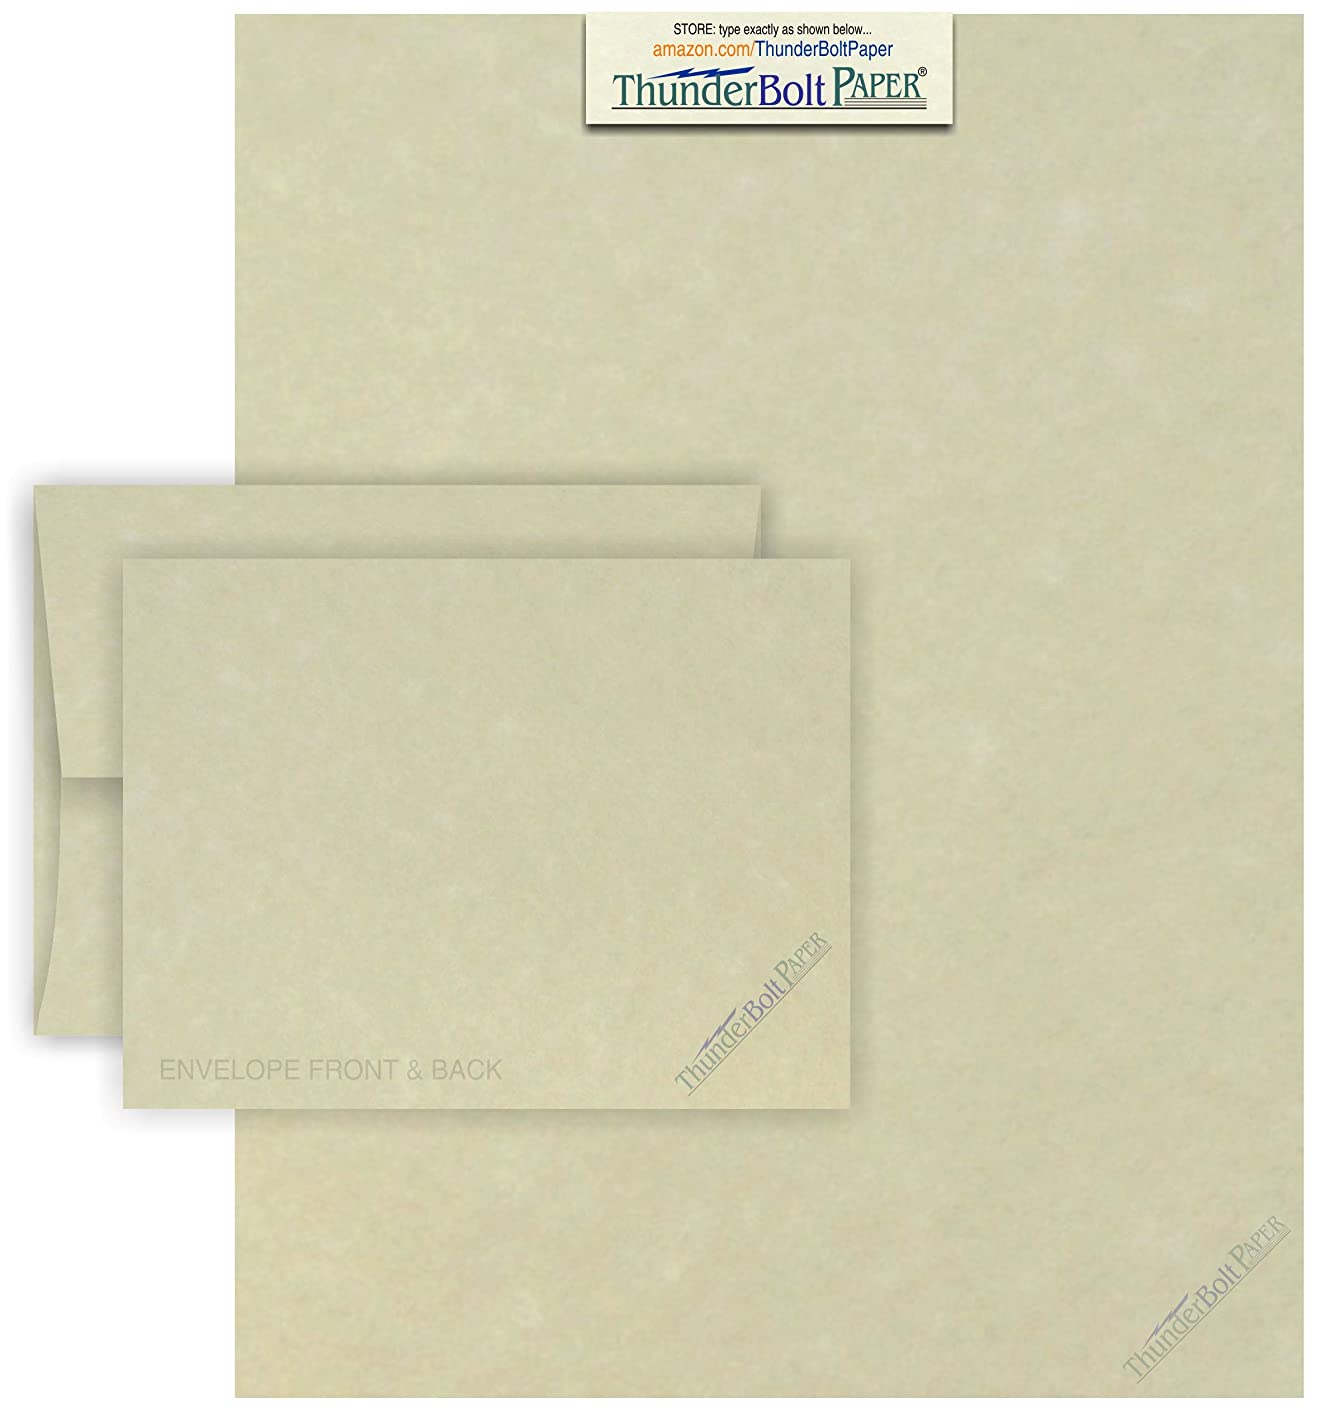 8.5 X 11 Paper Sheets with A-2 Envelopes - Natural Parchment - 25 Sets - Fold Letter Size Text in Fourth to Fit in Envelopes - Matching Pack - Invitations, Greeting, Thank You, Notes, Holidays